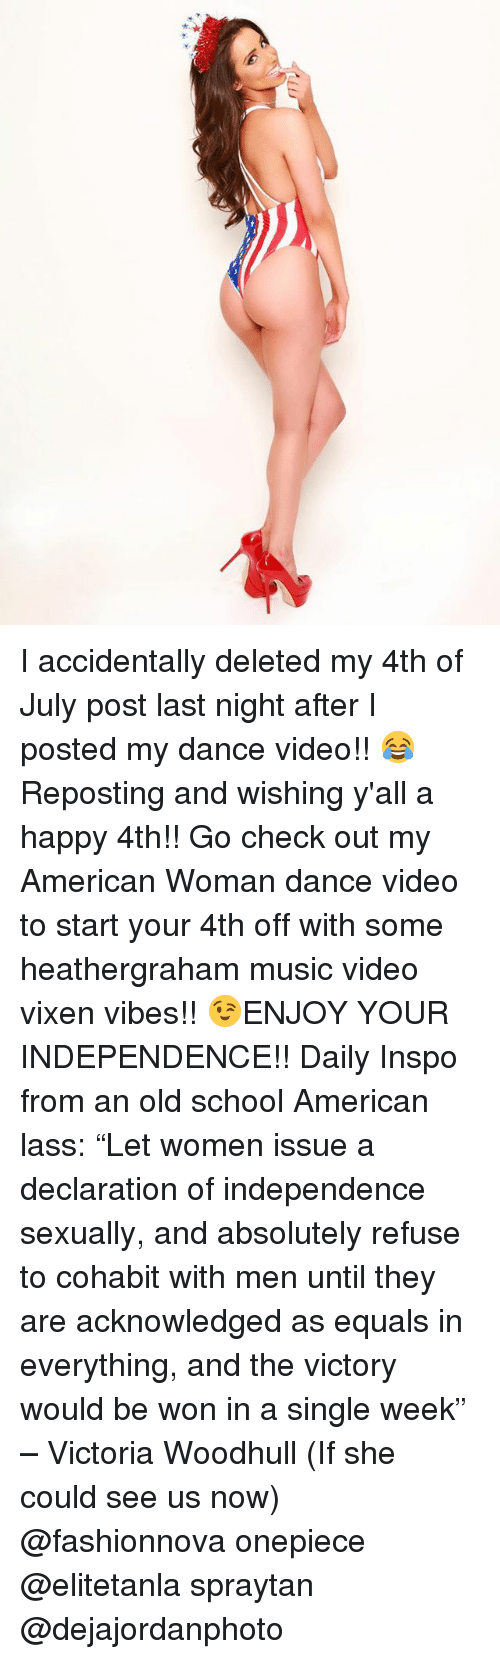 """Memes, Music, and School: I accidentally deleted my 4th of July post last night after I posted my dance video!! 😂 Reposting and wishing y'all a happy 4th!! Go check out my American Woman dance video to start your 4th off with some heathergraham music video vixen vibes!! 😉ENJOY YOUR INDEPENDENCE!! Daily Inspo from an old school American lass: """"Let women issue a declaration of independence sexually, and absolutely refuse to cohabit with men until they are acknowledged as equals in everything, and the victory would be won in a single week"""" – Victoria Woodhull (If she could see us now) @fashionnova onepiece @elitetanla spraytan @dejajordanphoto"""